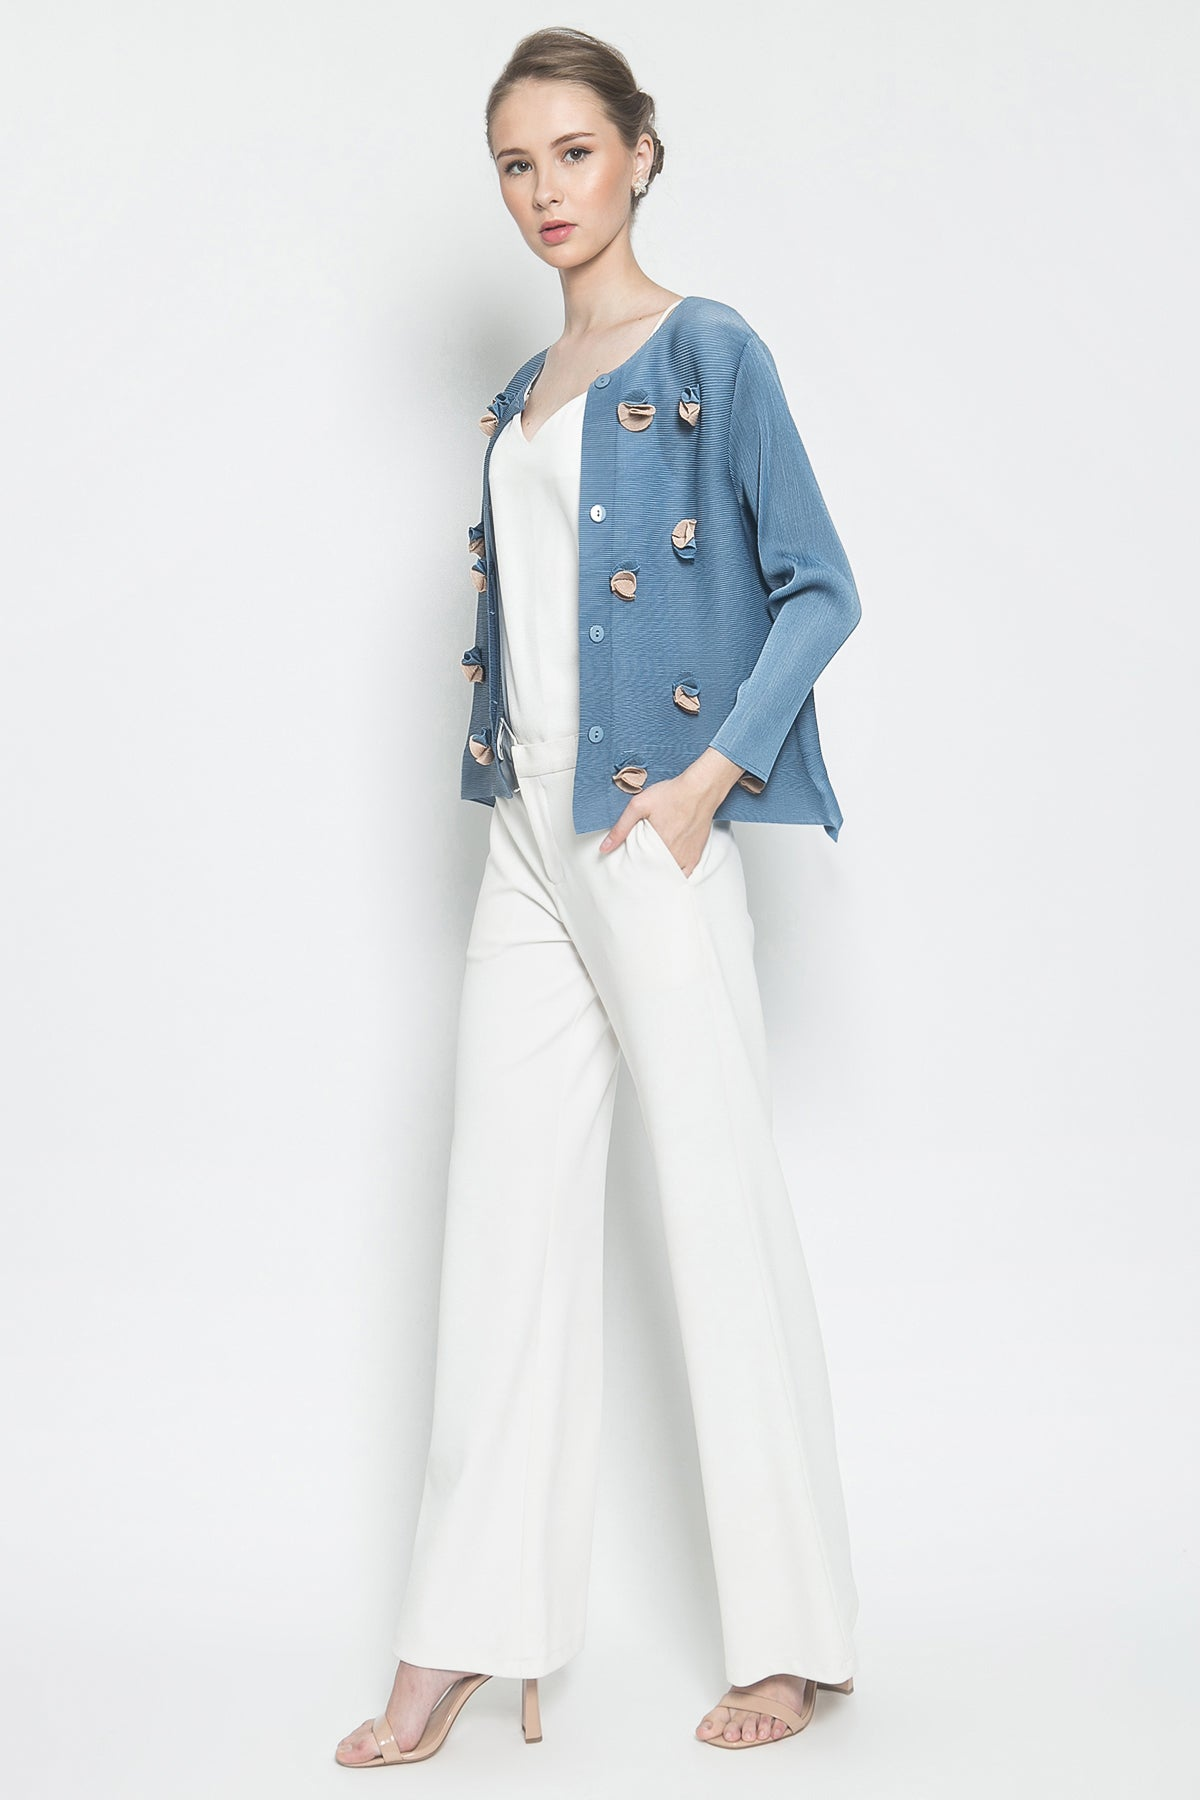 Celine Outer in Baby Blue